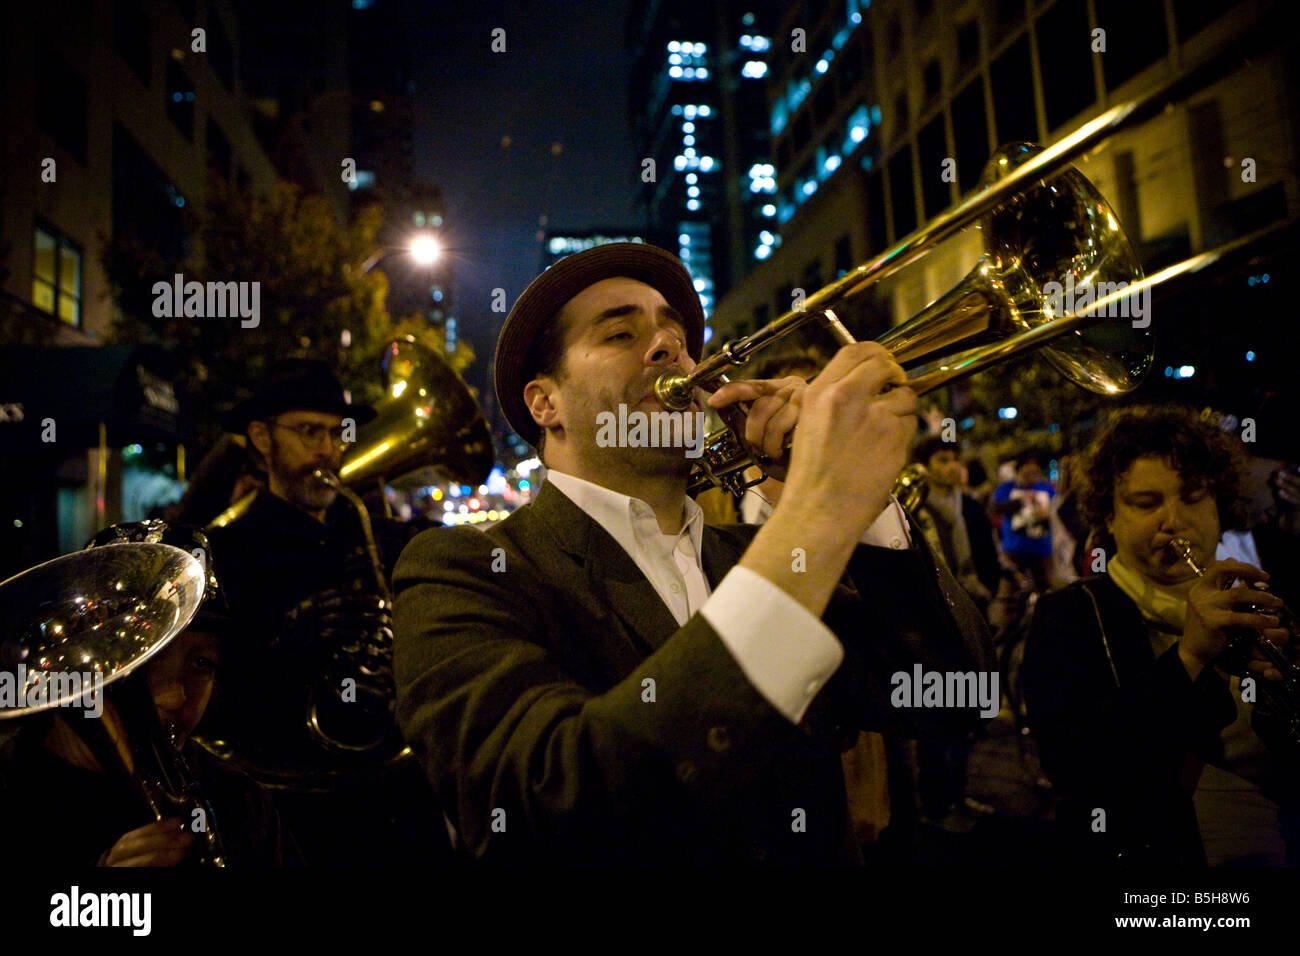 Seattle, 04.11. 2008. People dance as Balkan brass band play on the 1ST Ave. in Seattle on the night of Barack Obama's - Stock Image